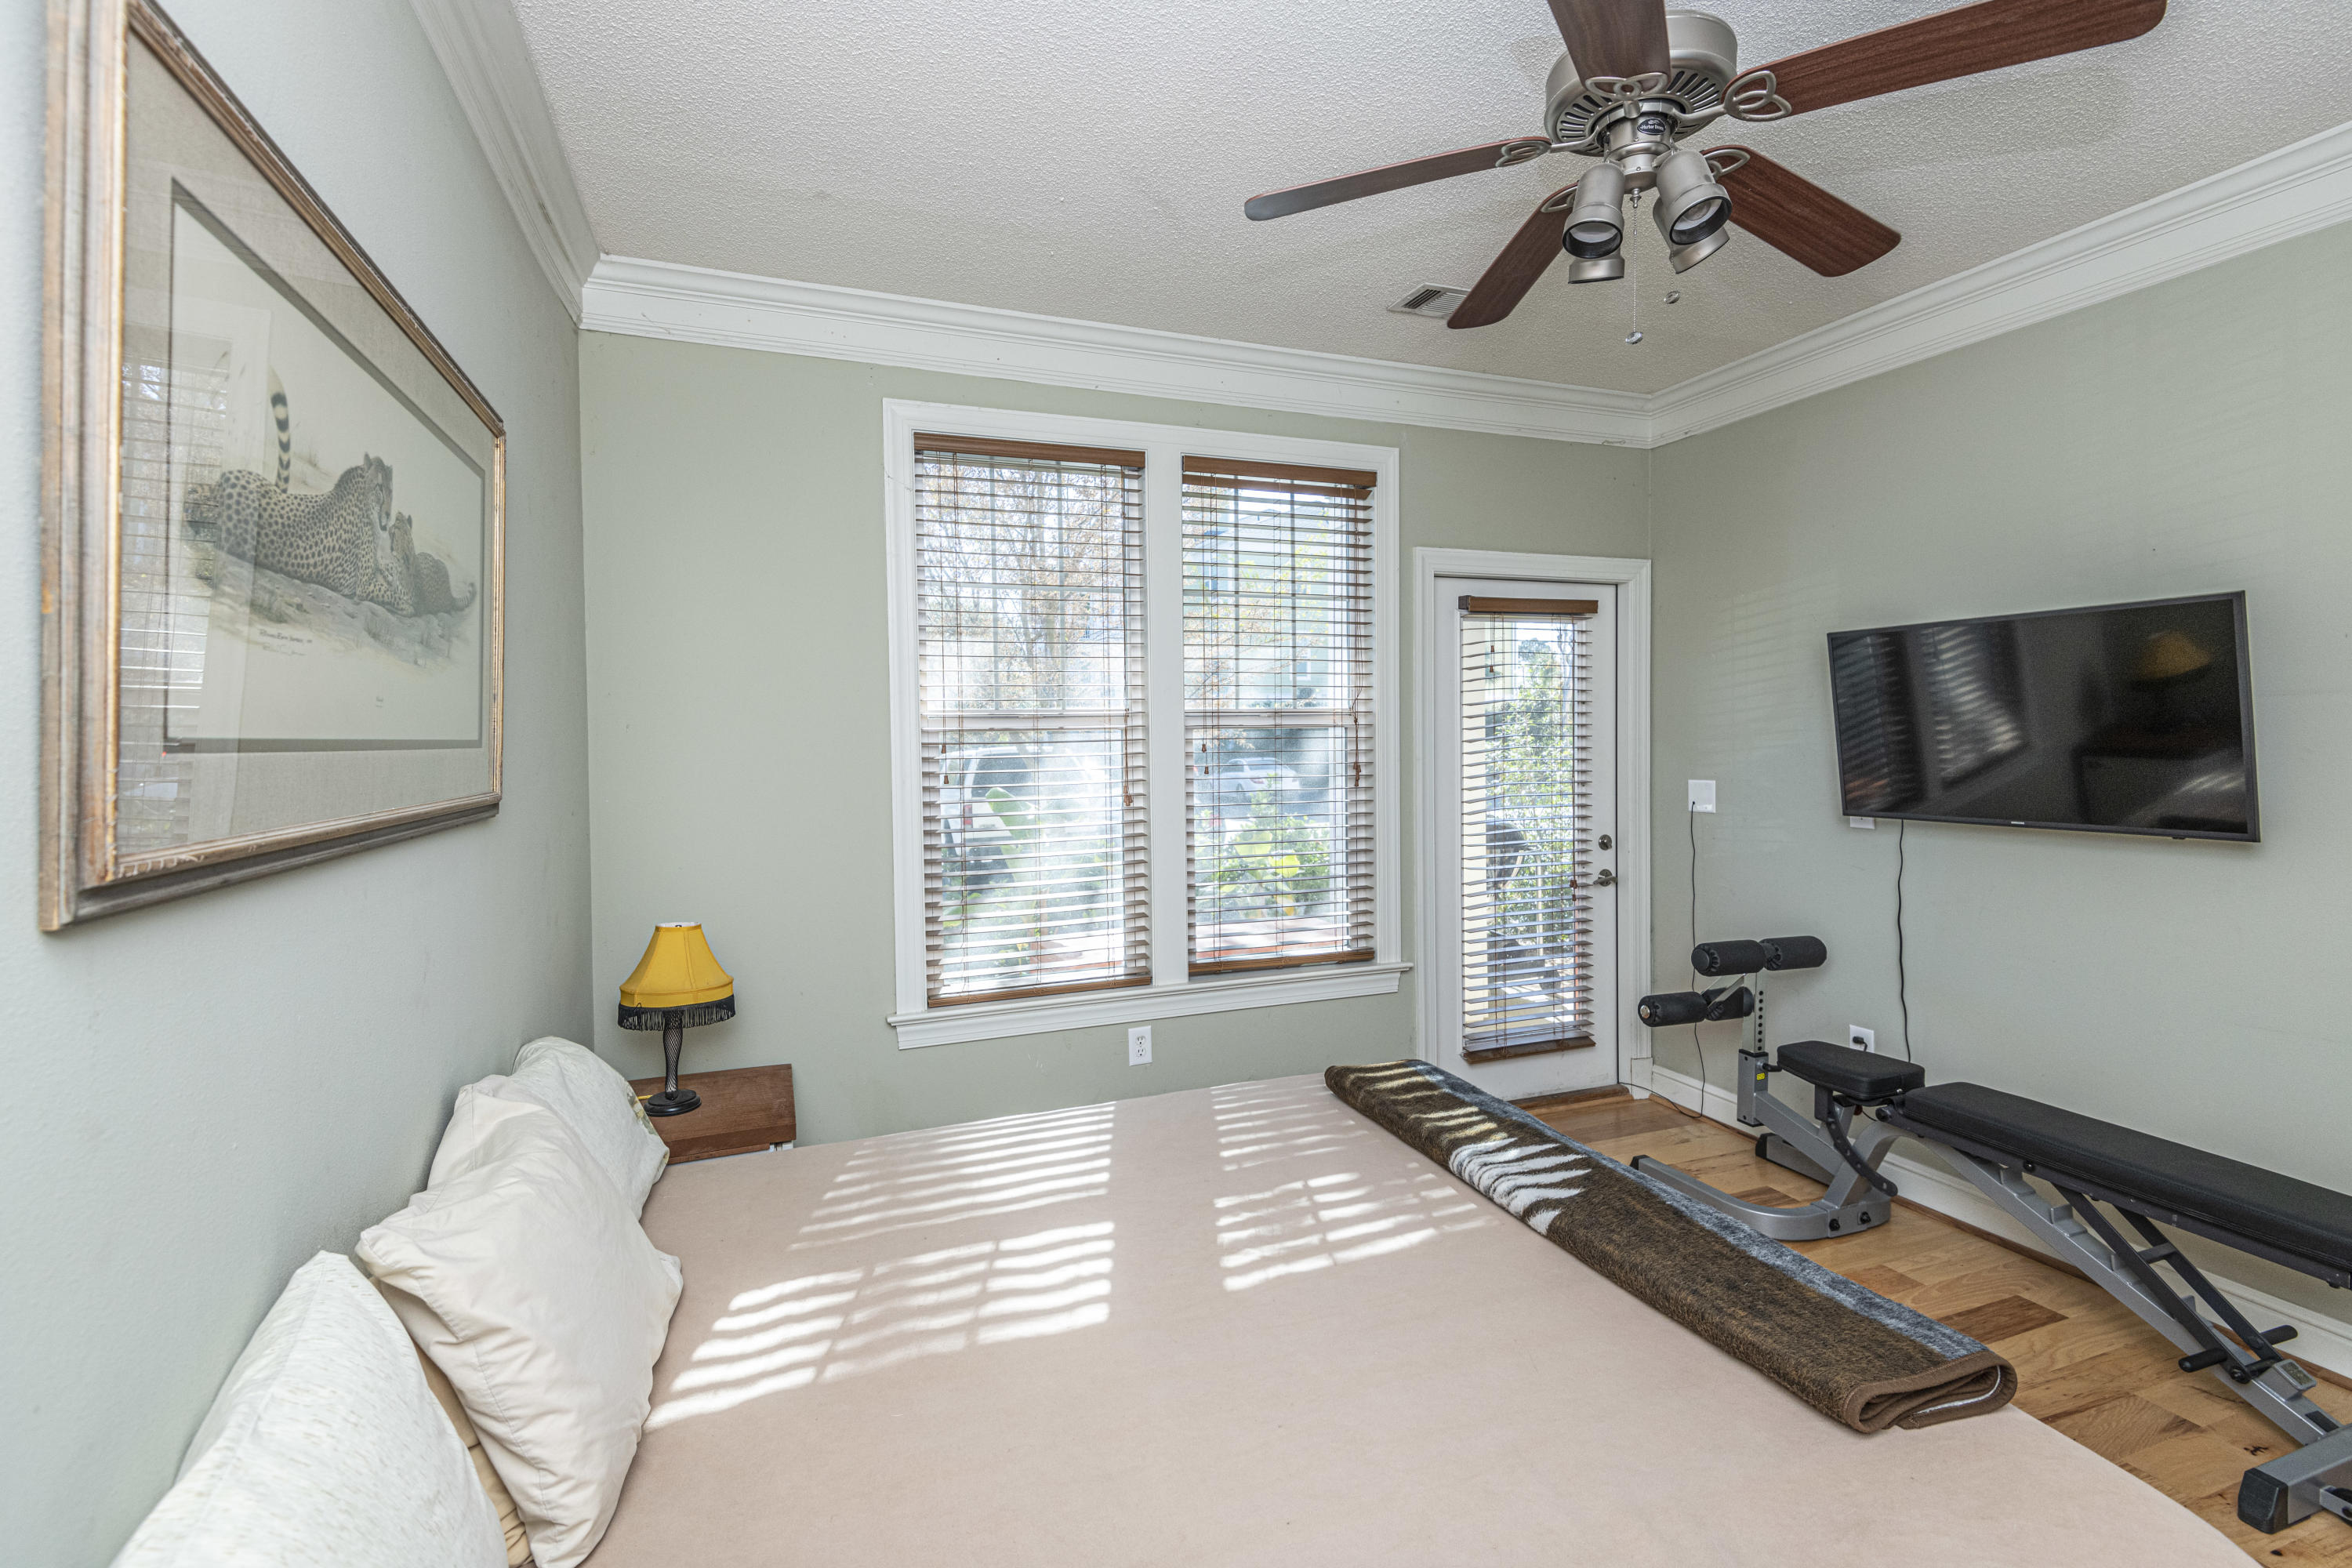 Southampton Pointe Homes For Sale - 2112 Chatelain, Mount Pleasant, SC - 0